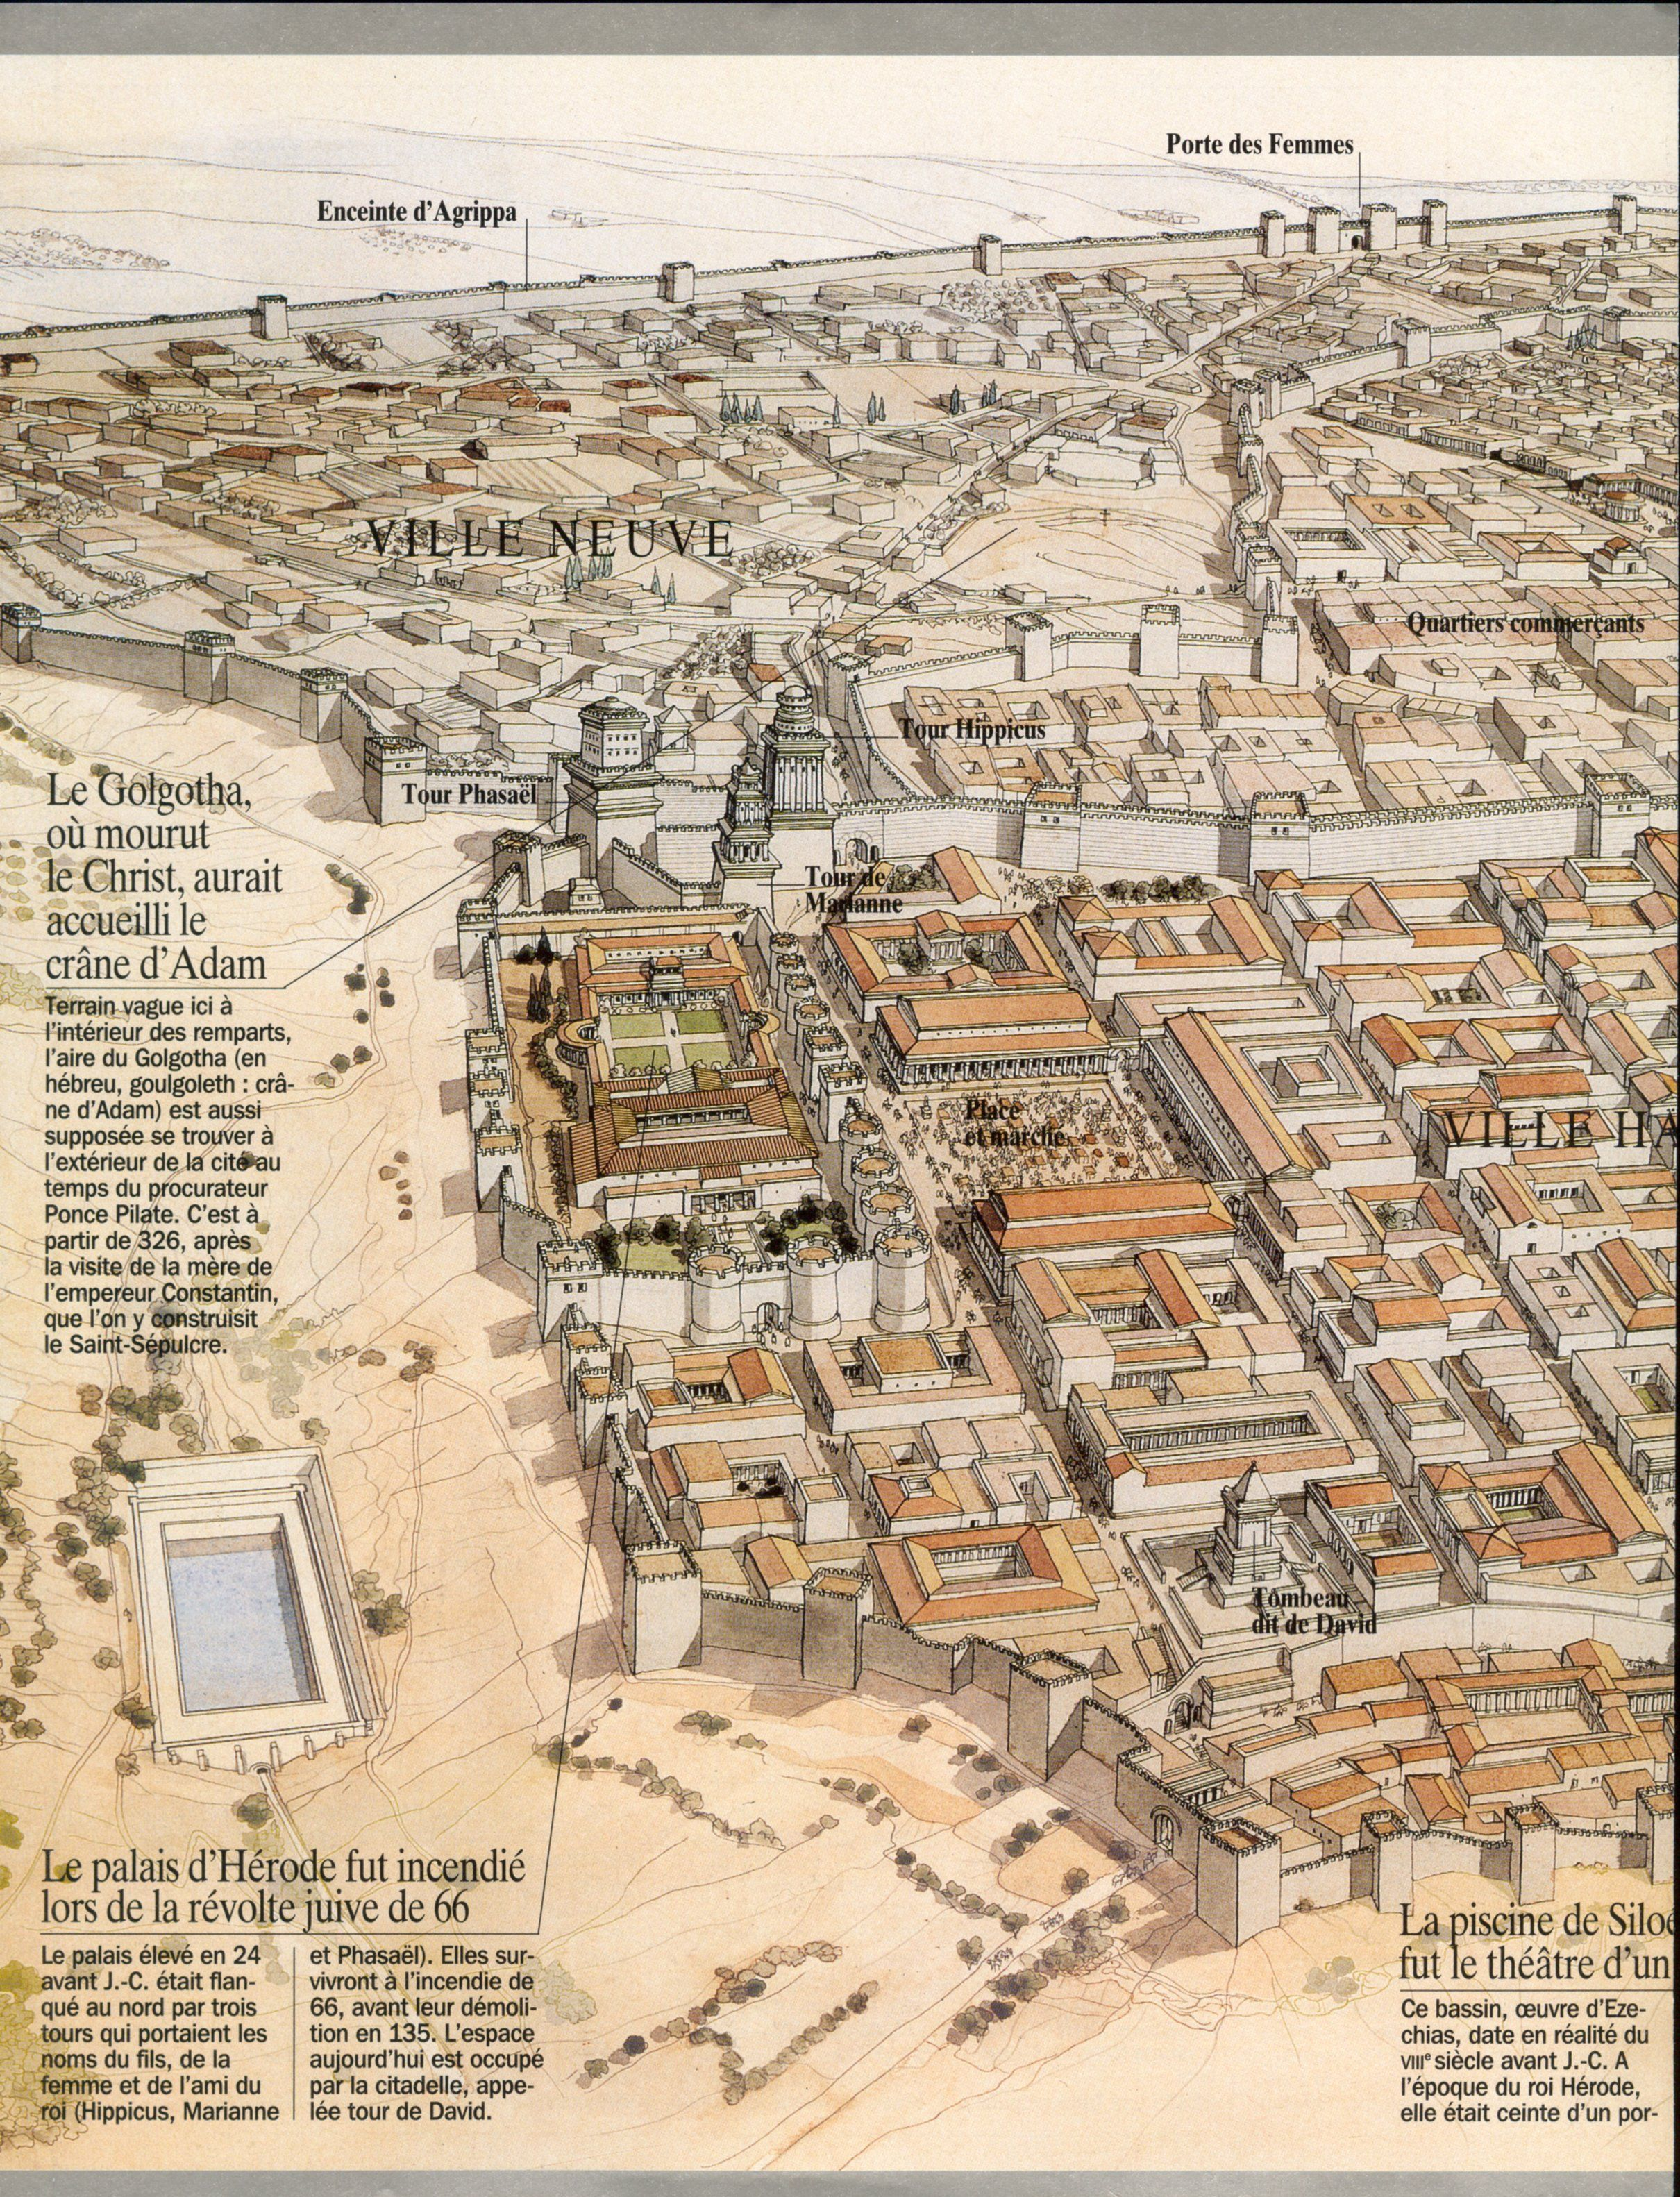 Jerusalem of Herod the Great  (37 BC) J.C. Golvin #ancientarchitecture